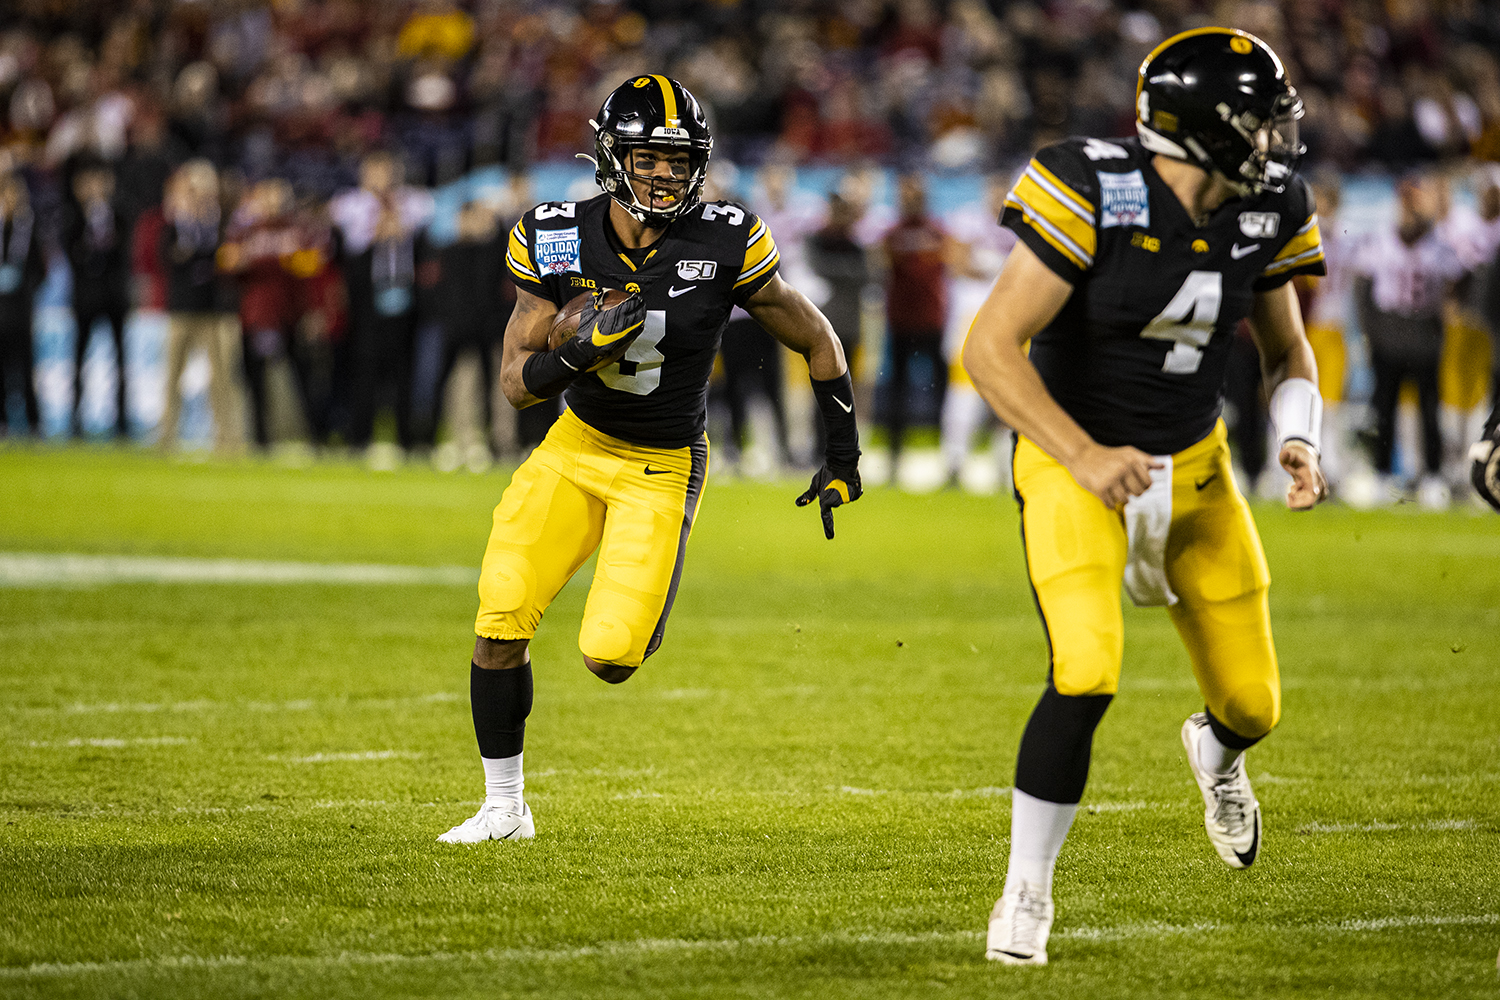 Iowa wideout Tyrone Tracy, Jr. carries the ball during the 2019 SDCCU Holiday Bowl between Iowa and USC in San Diego on Friday, Dec. 27, 2019.